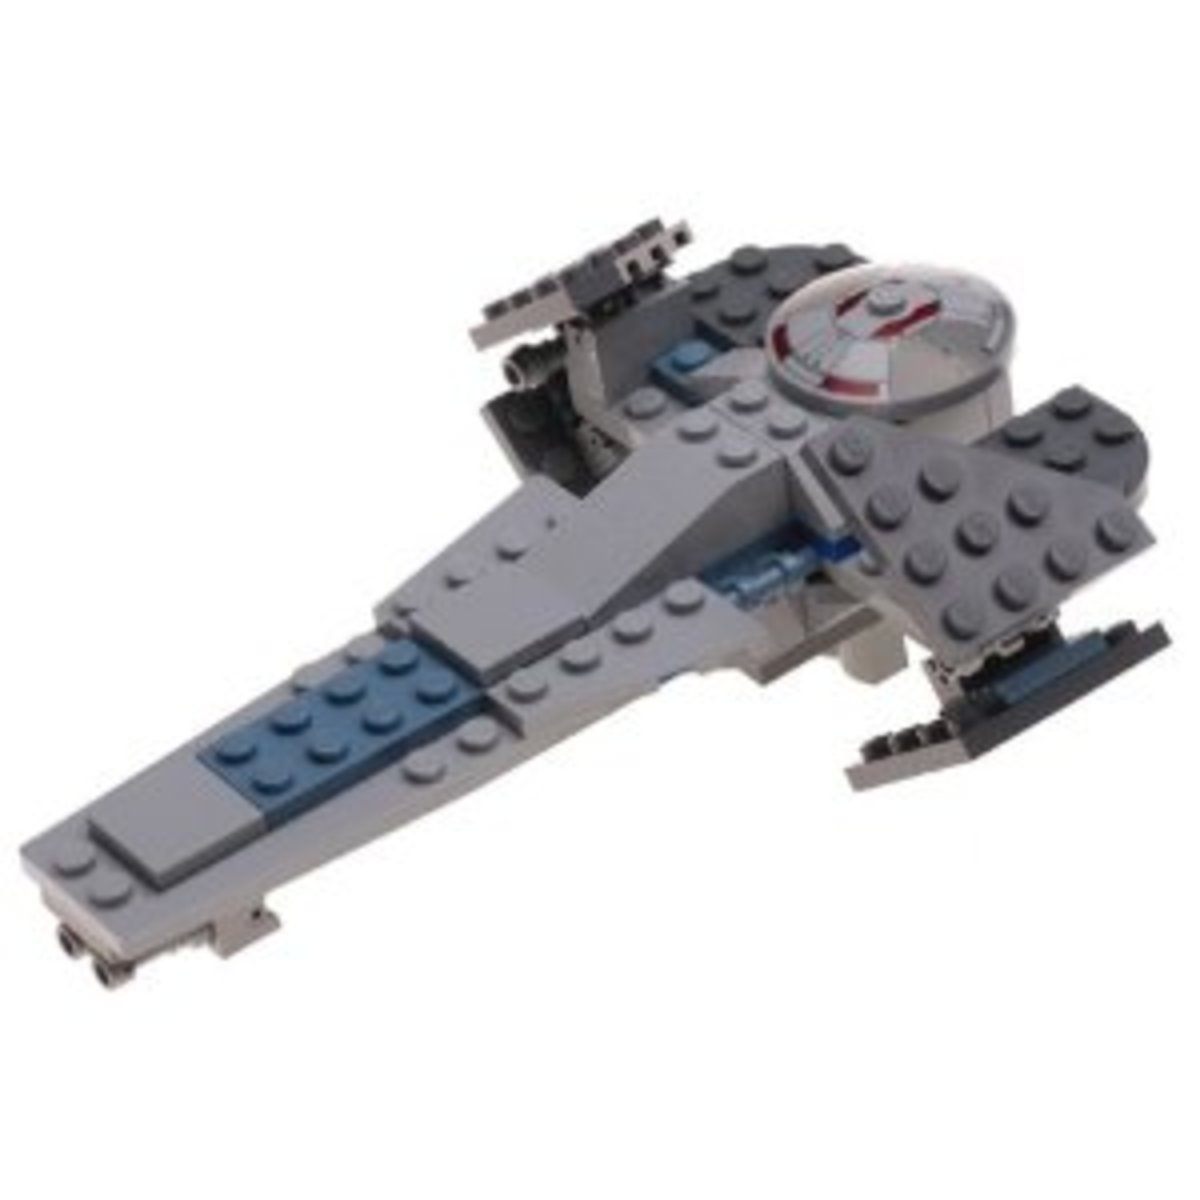 LEGO Star Wars Sith Infiltrator 4493 Assembled